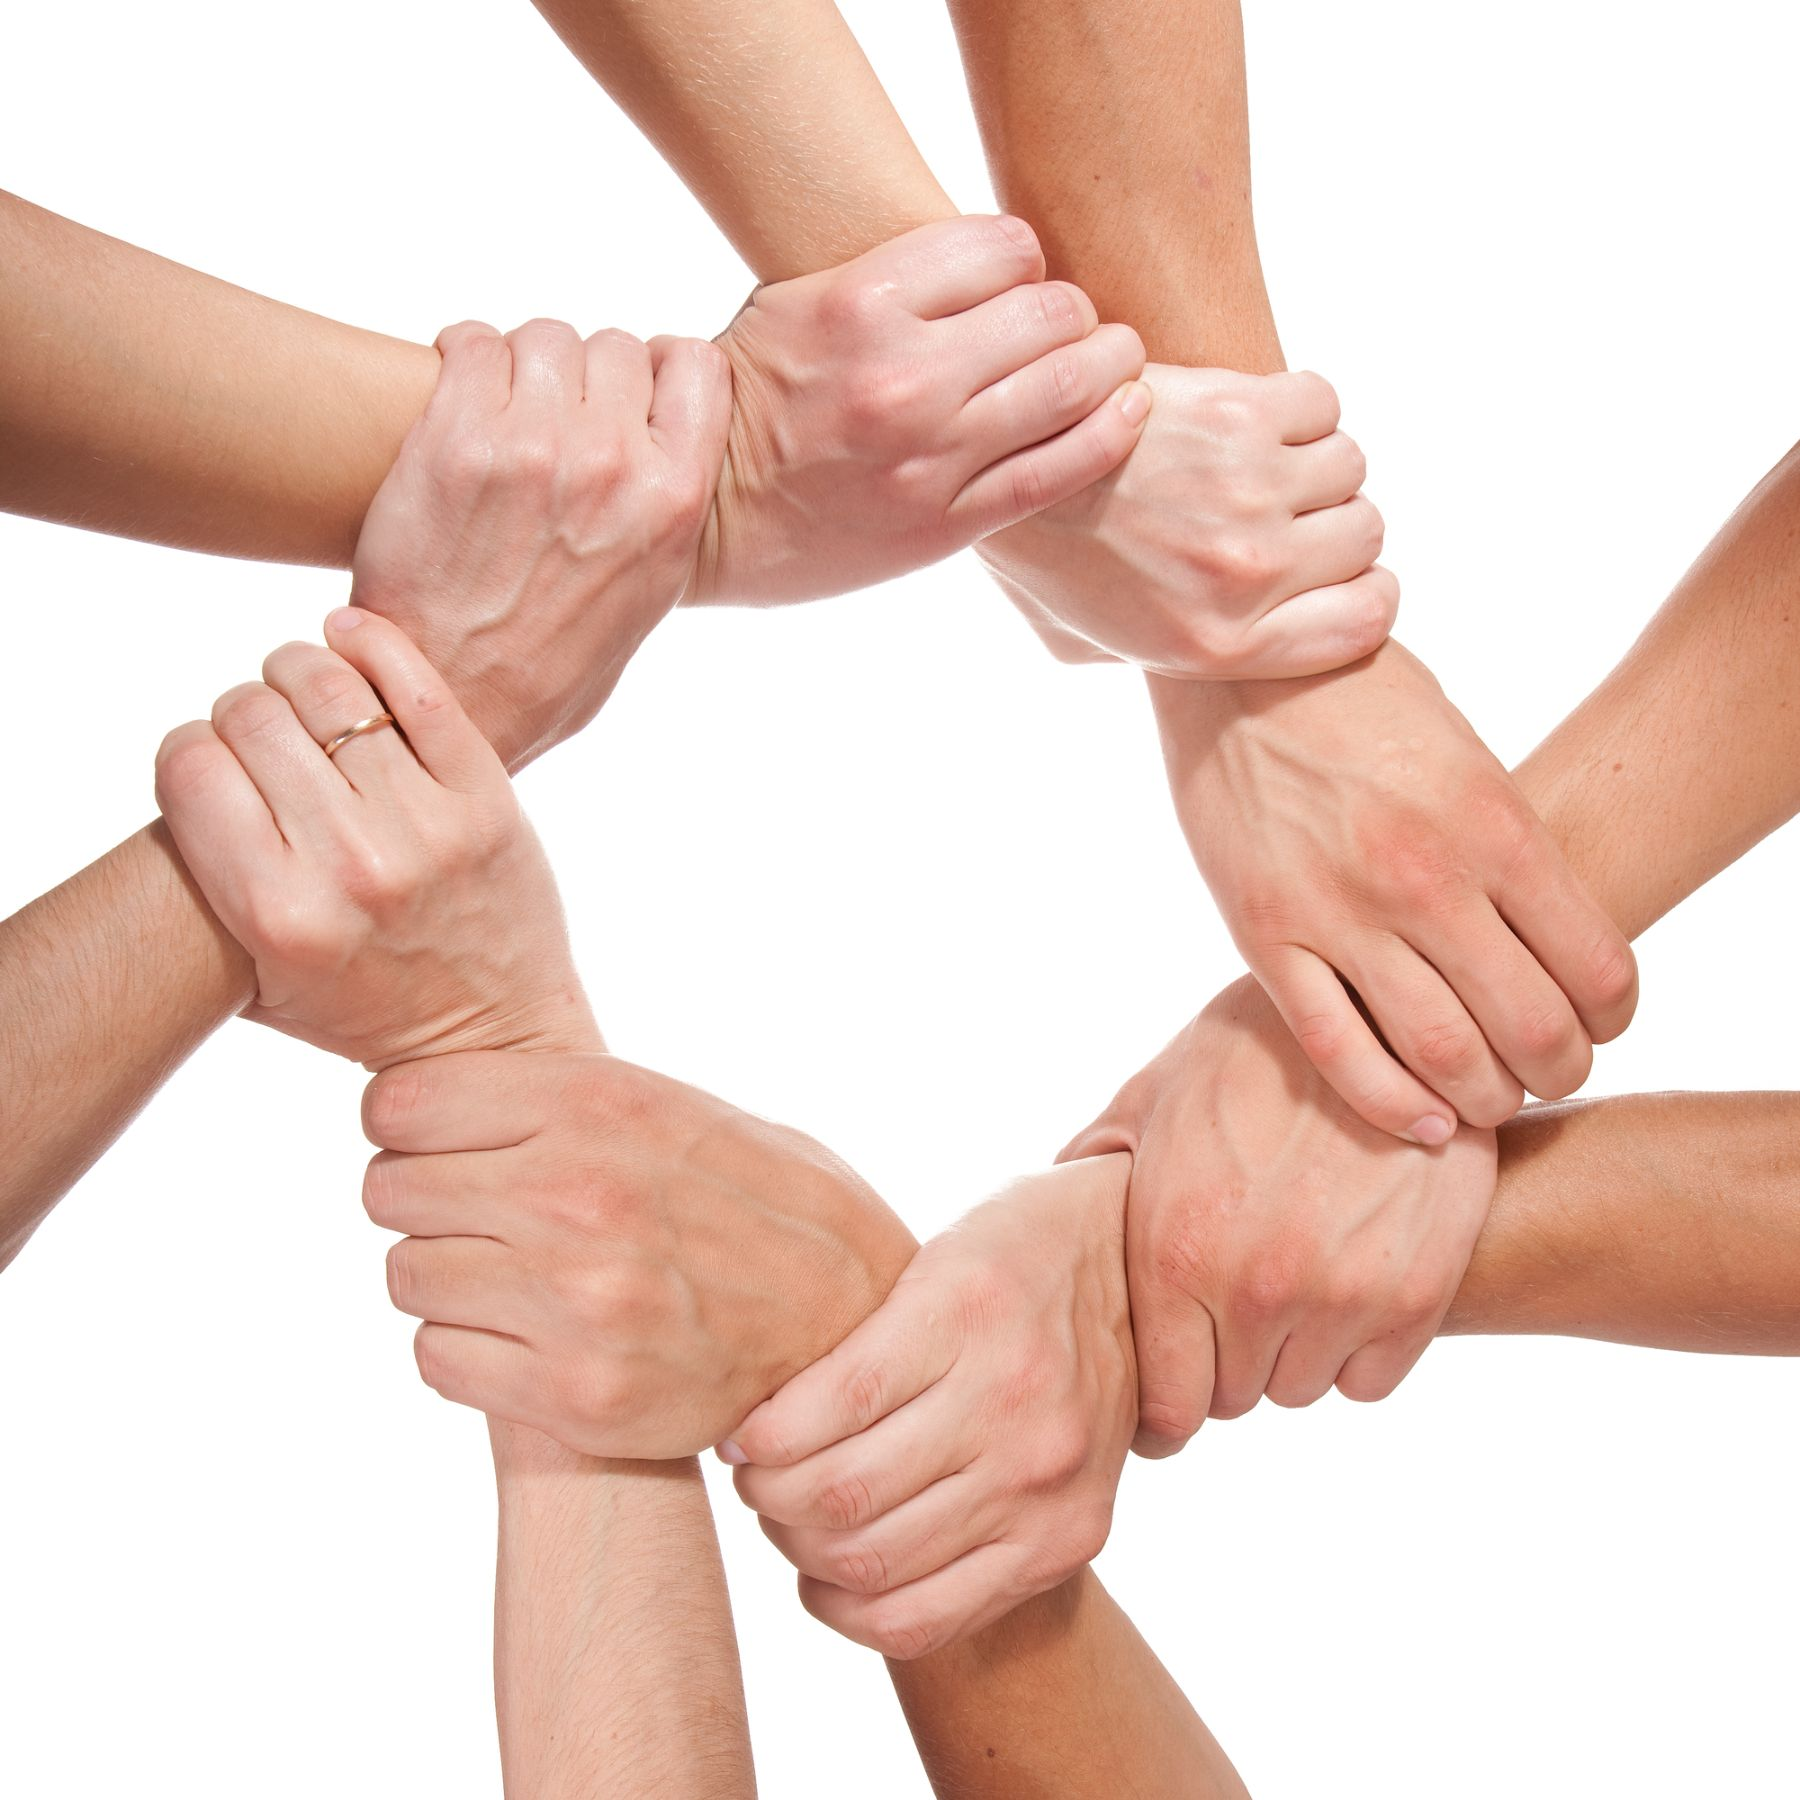 Circle of hands holding wrists